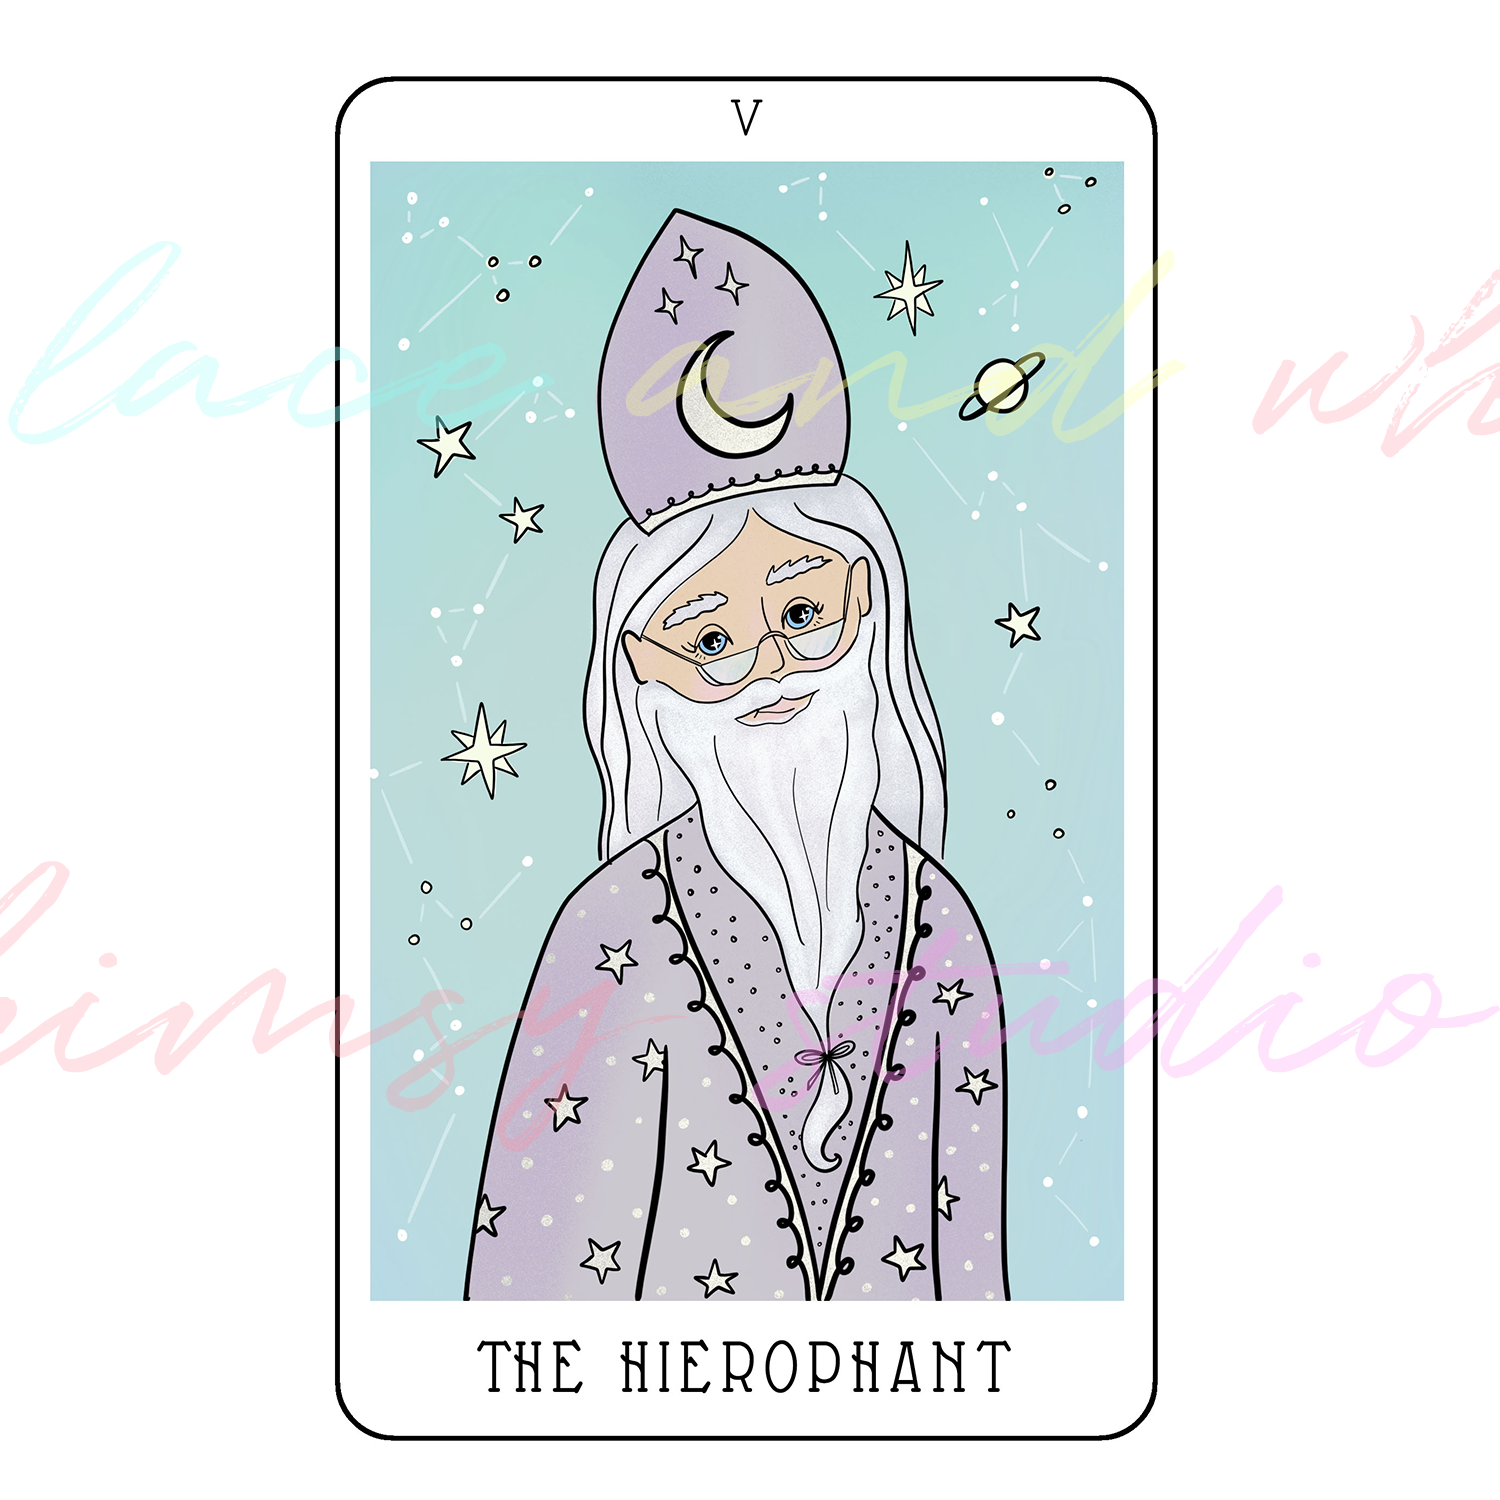 tarot-cards-illustration-series-2018-laceandwhimsy-kathy-d-clark-The-Hierophant.png